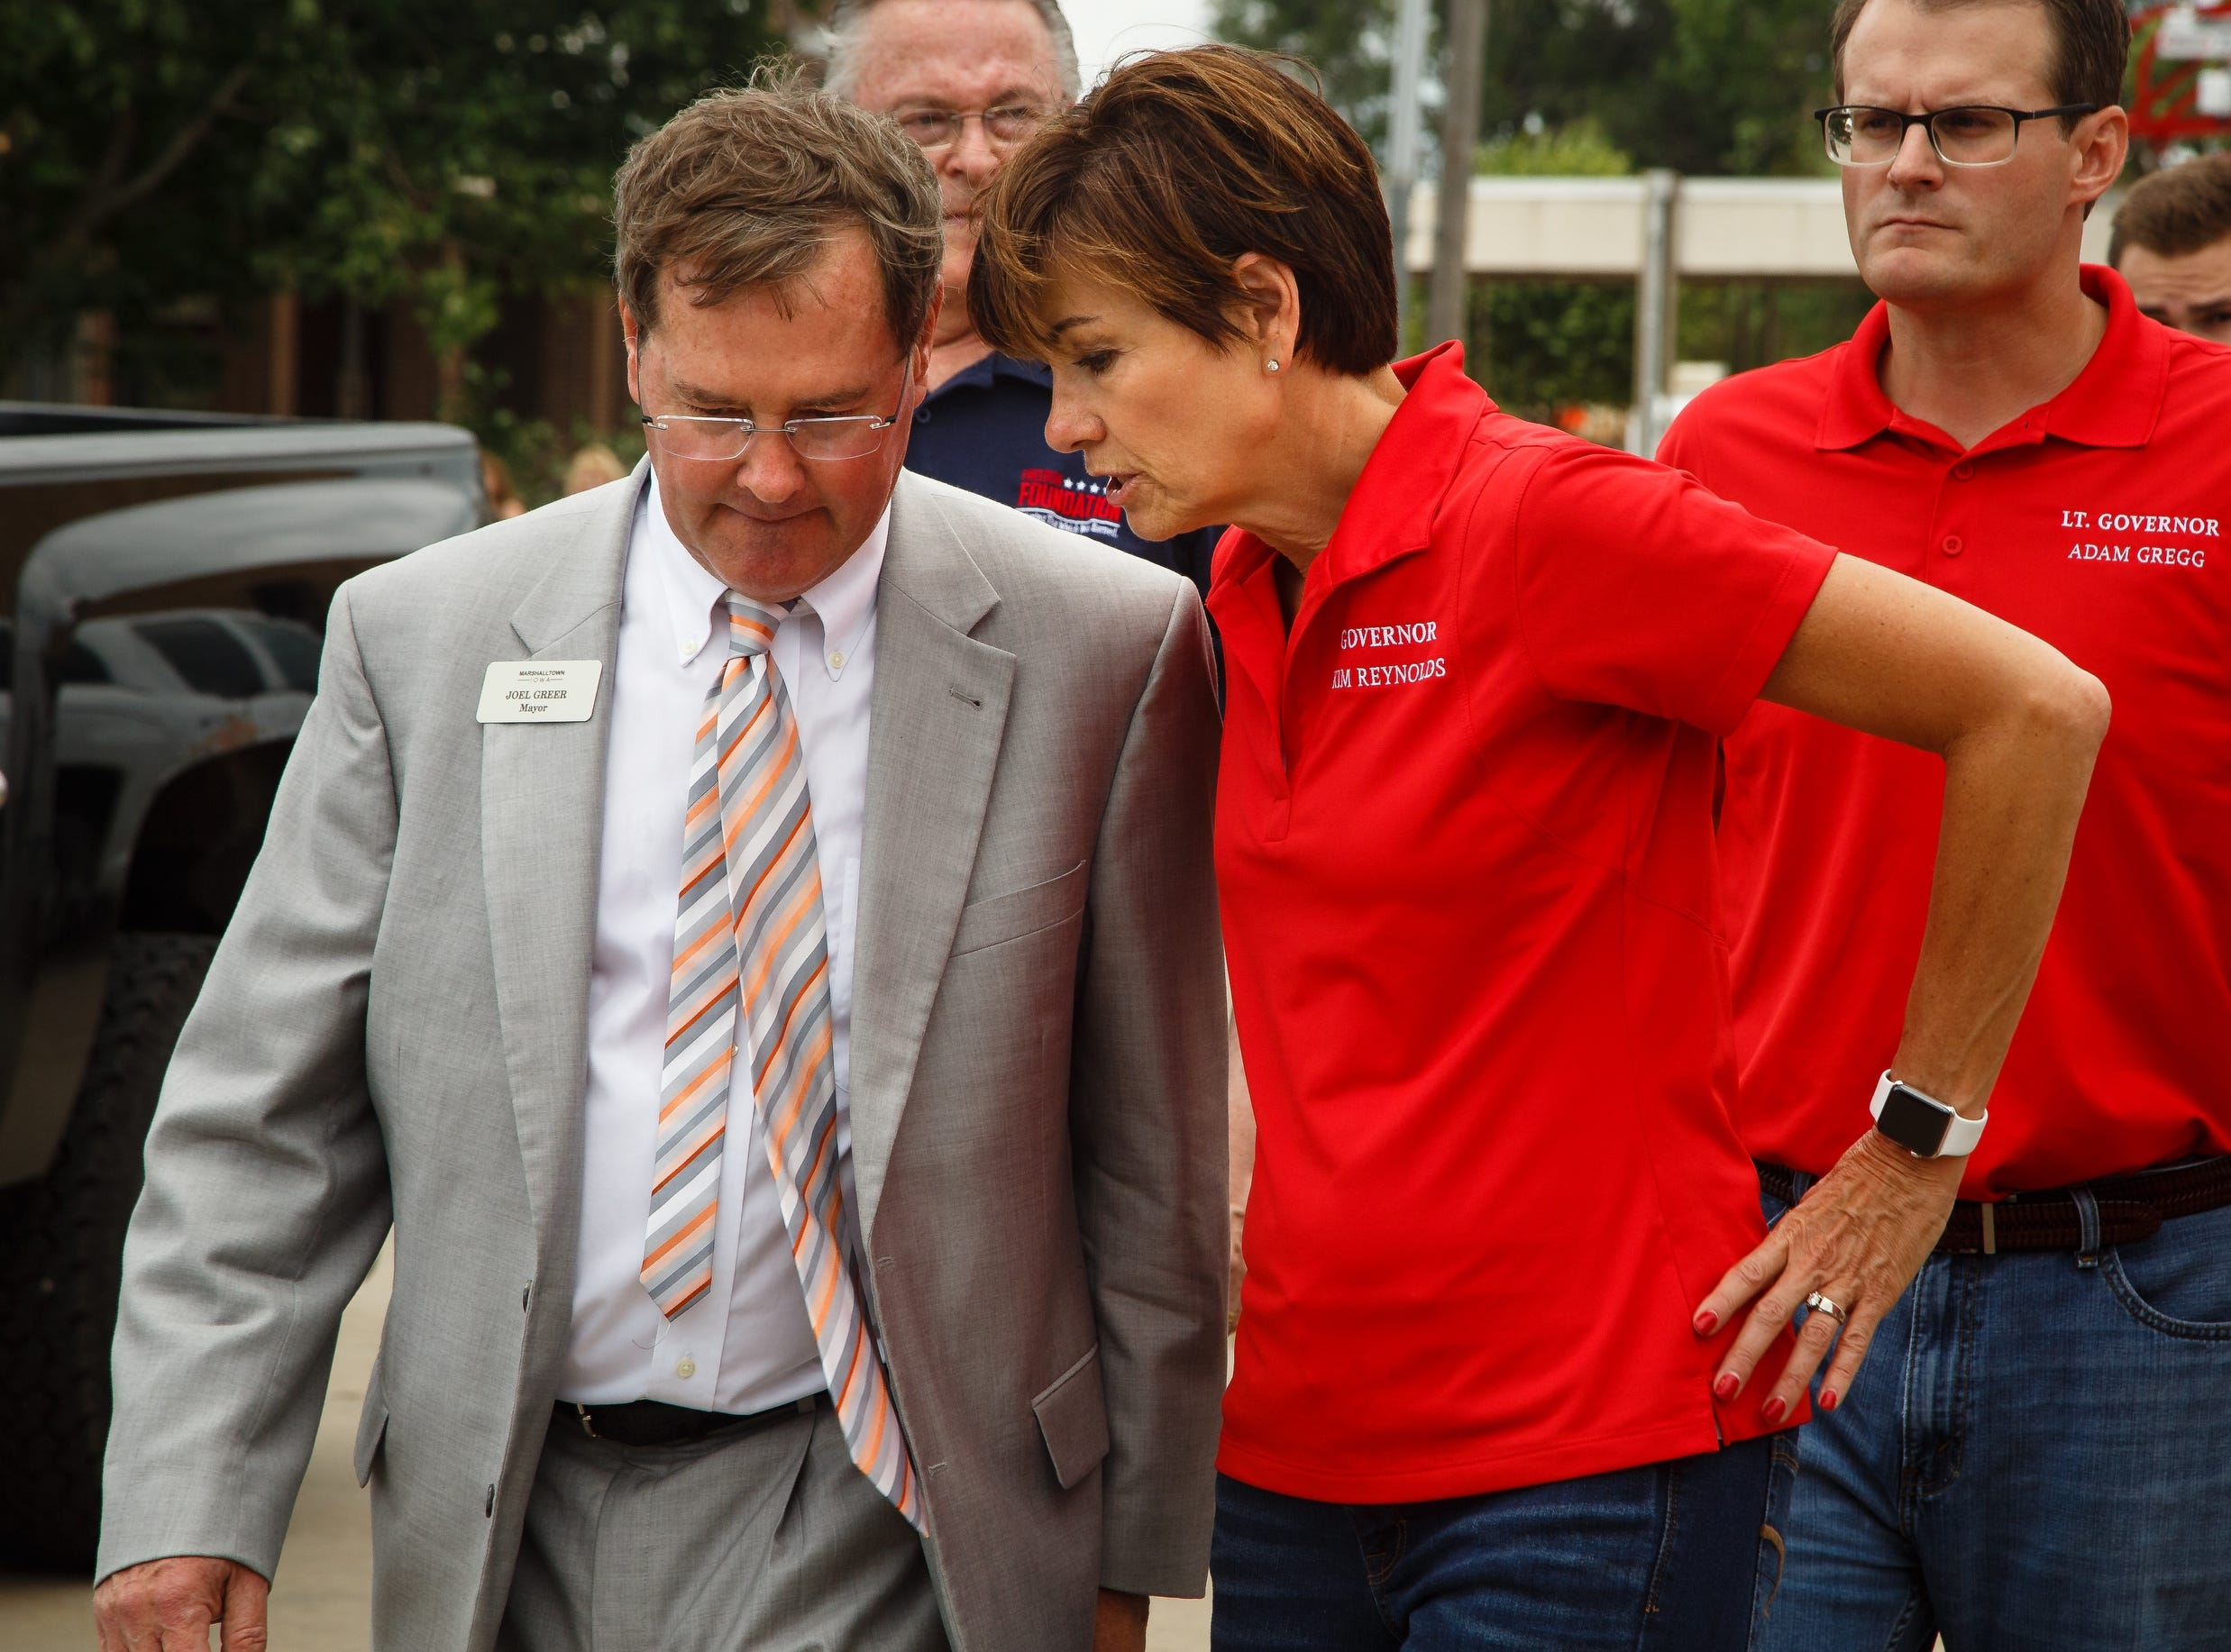 Marshalltown Mayor Joel Greer, left, shows Iowa Governor Kim Reynolds the damage in Marshalltown on Friday, July 20, 2018. Yesterday, tornadoes ripped through central Iowa causing major damage but only minor injuries have been reported so far.